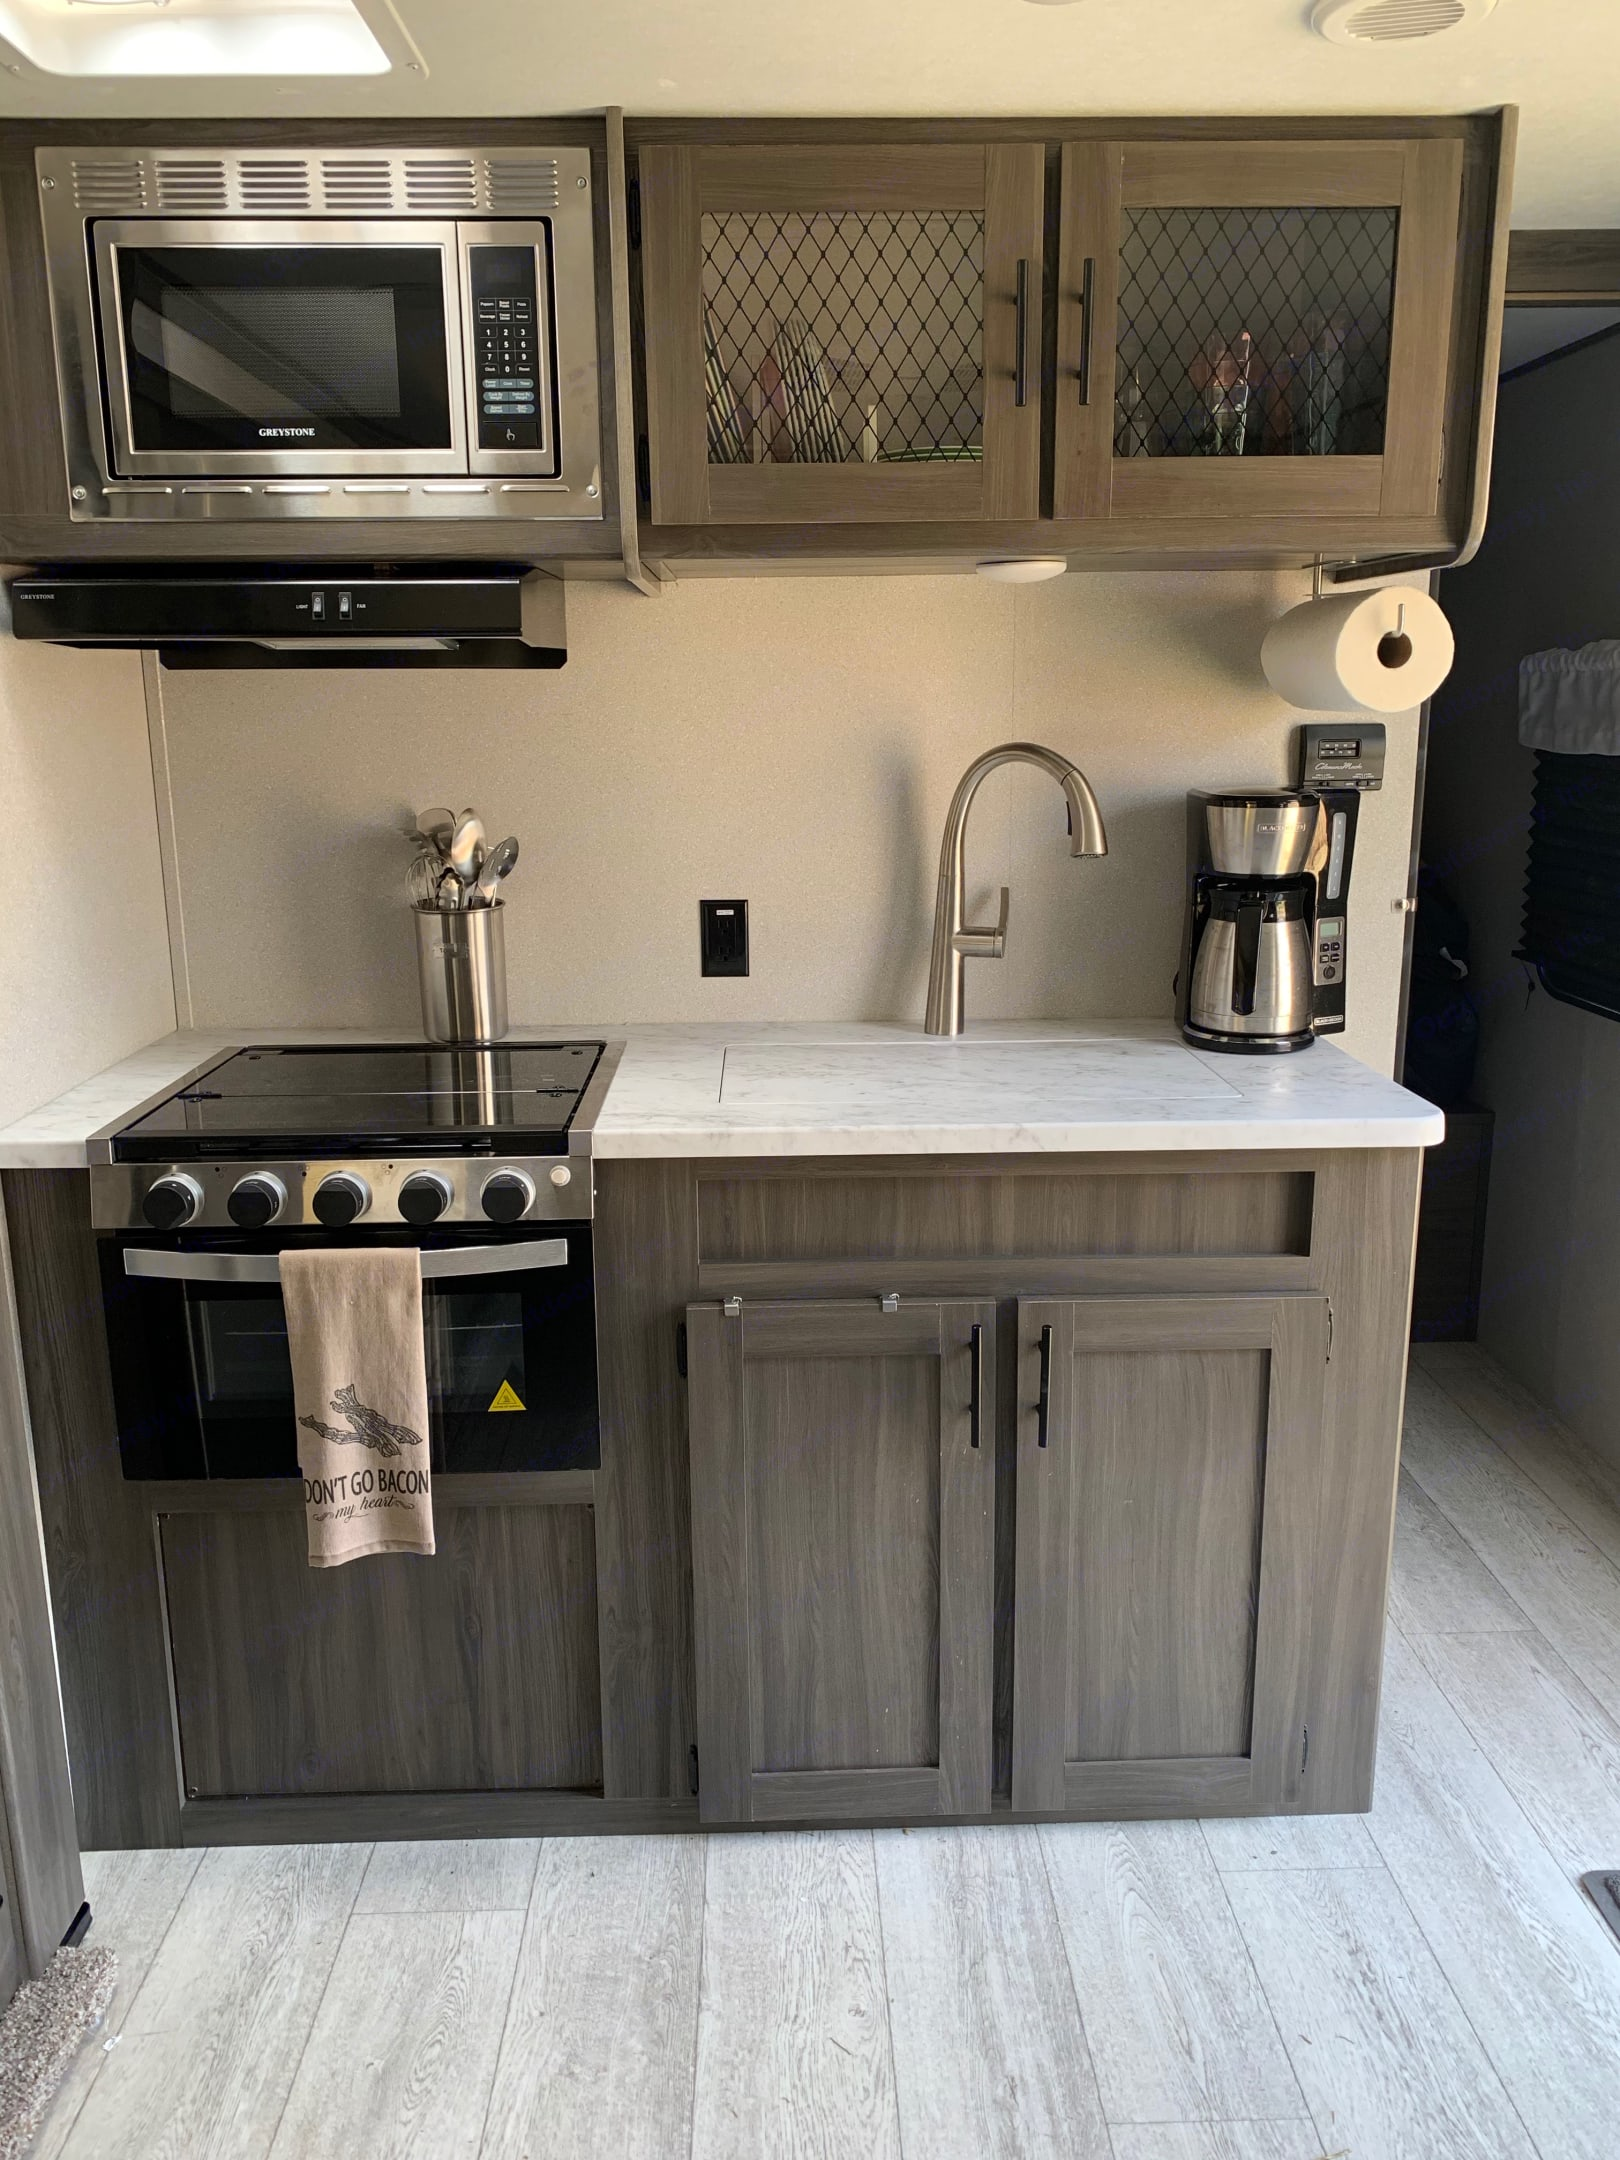 Kitchen area comes with 3-burner stove, oven, microwave, coffee maker, pots, pans, utensils, knives, and so much more. . Shasta SALEM25RS 2021